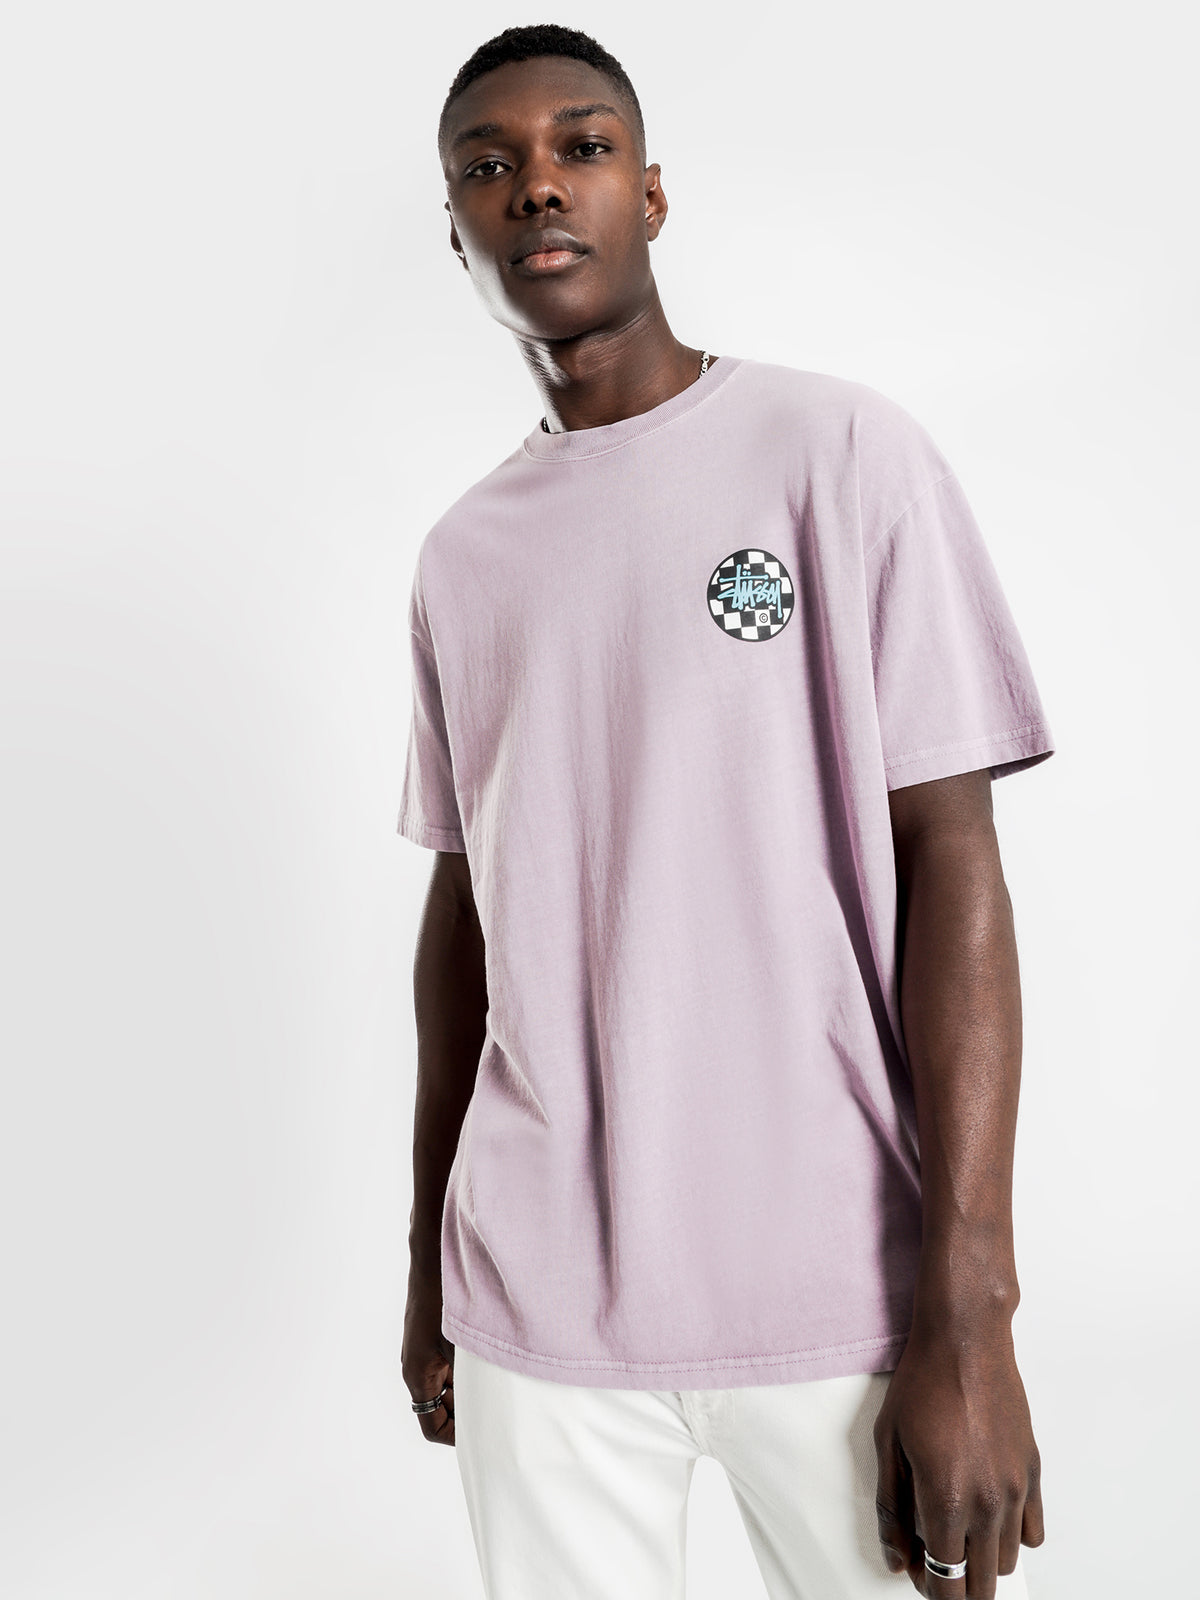 Chequer Dot Short Sleeve T-Shirt in Pigment Mauve